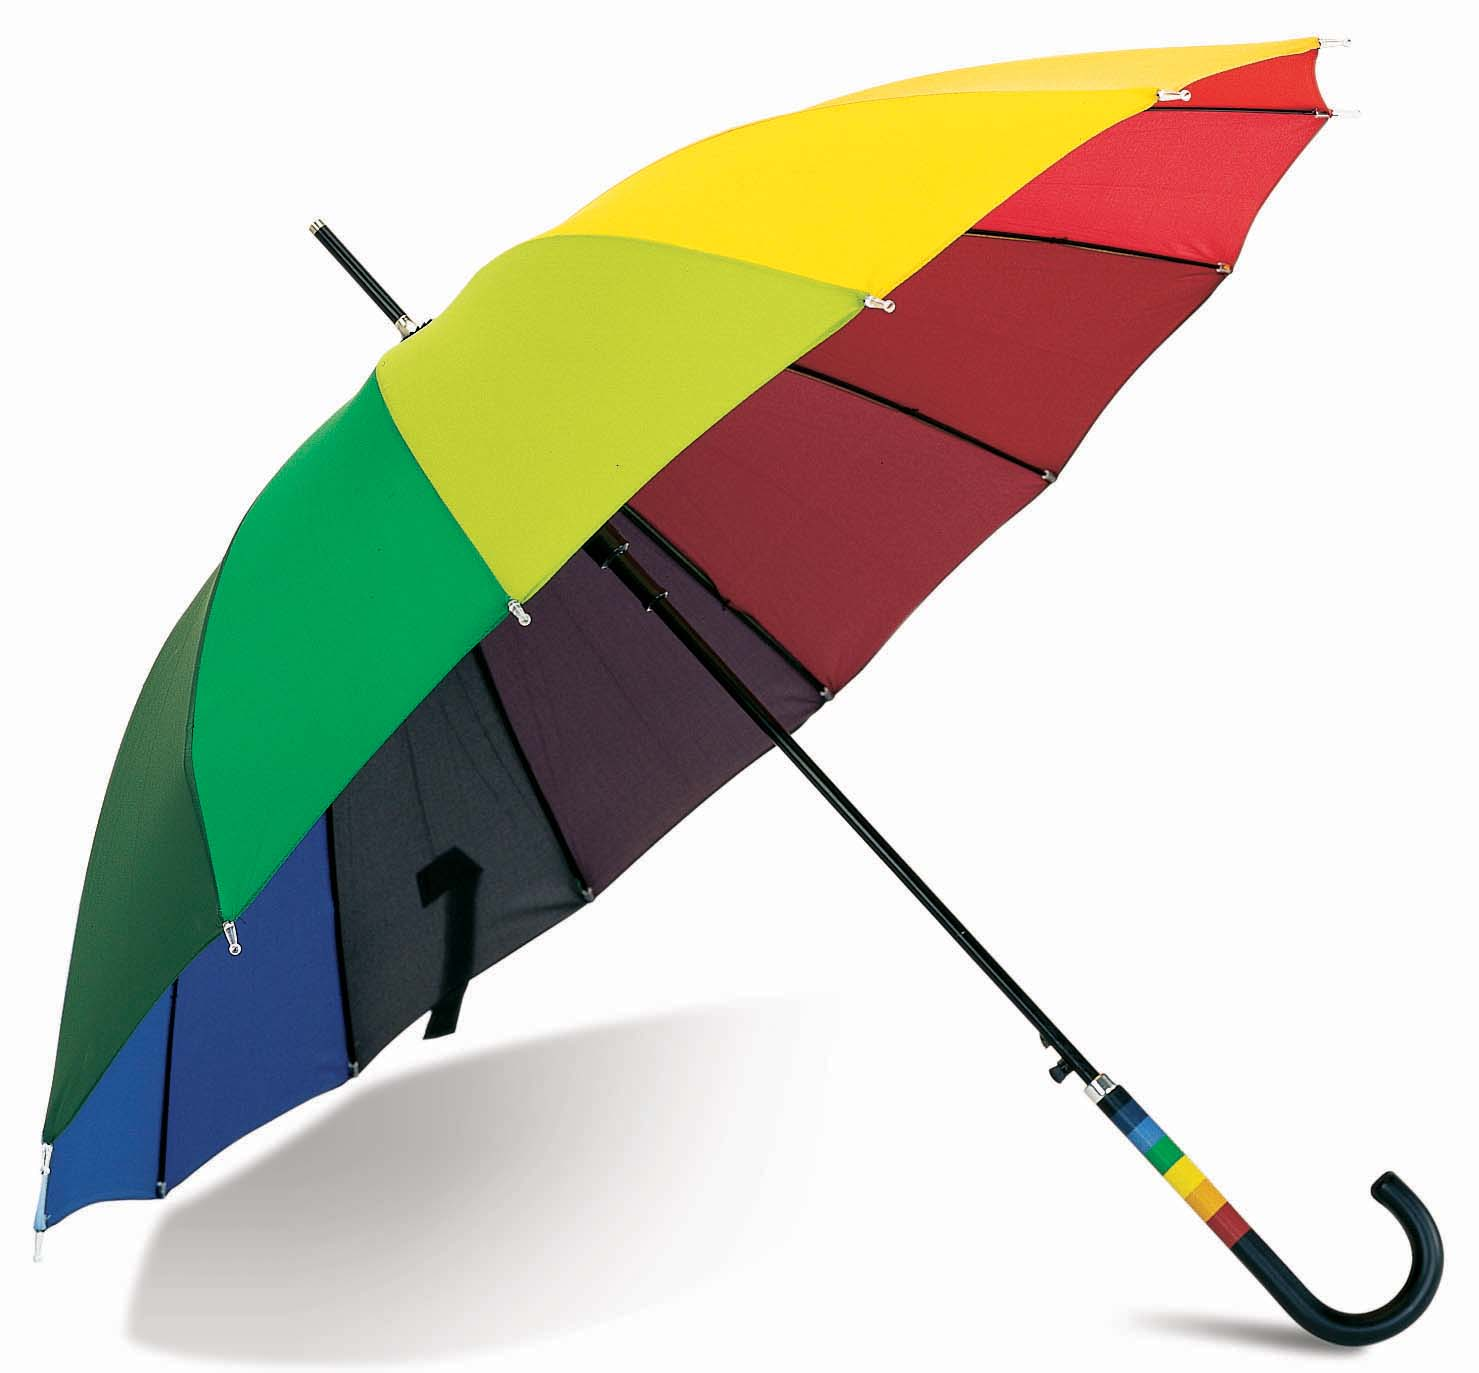 the umbrella Get in and out of any door without getting wet it makes a waterproof cone when closed — all the wetness stays inside, not on your floor.